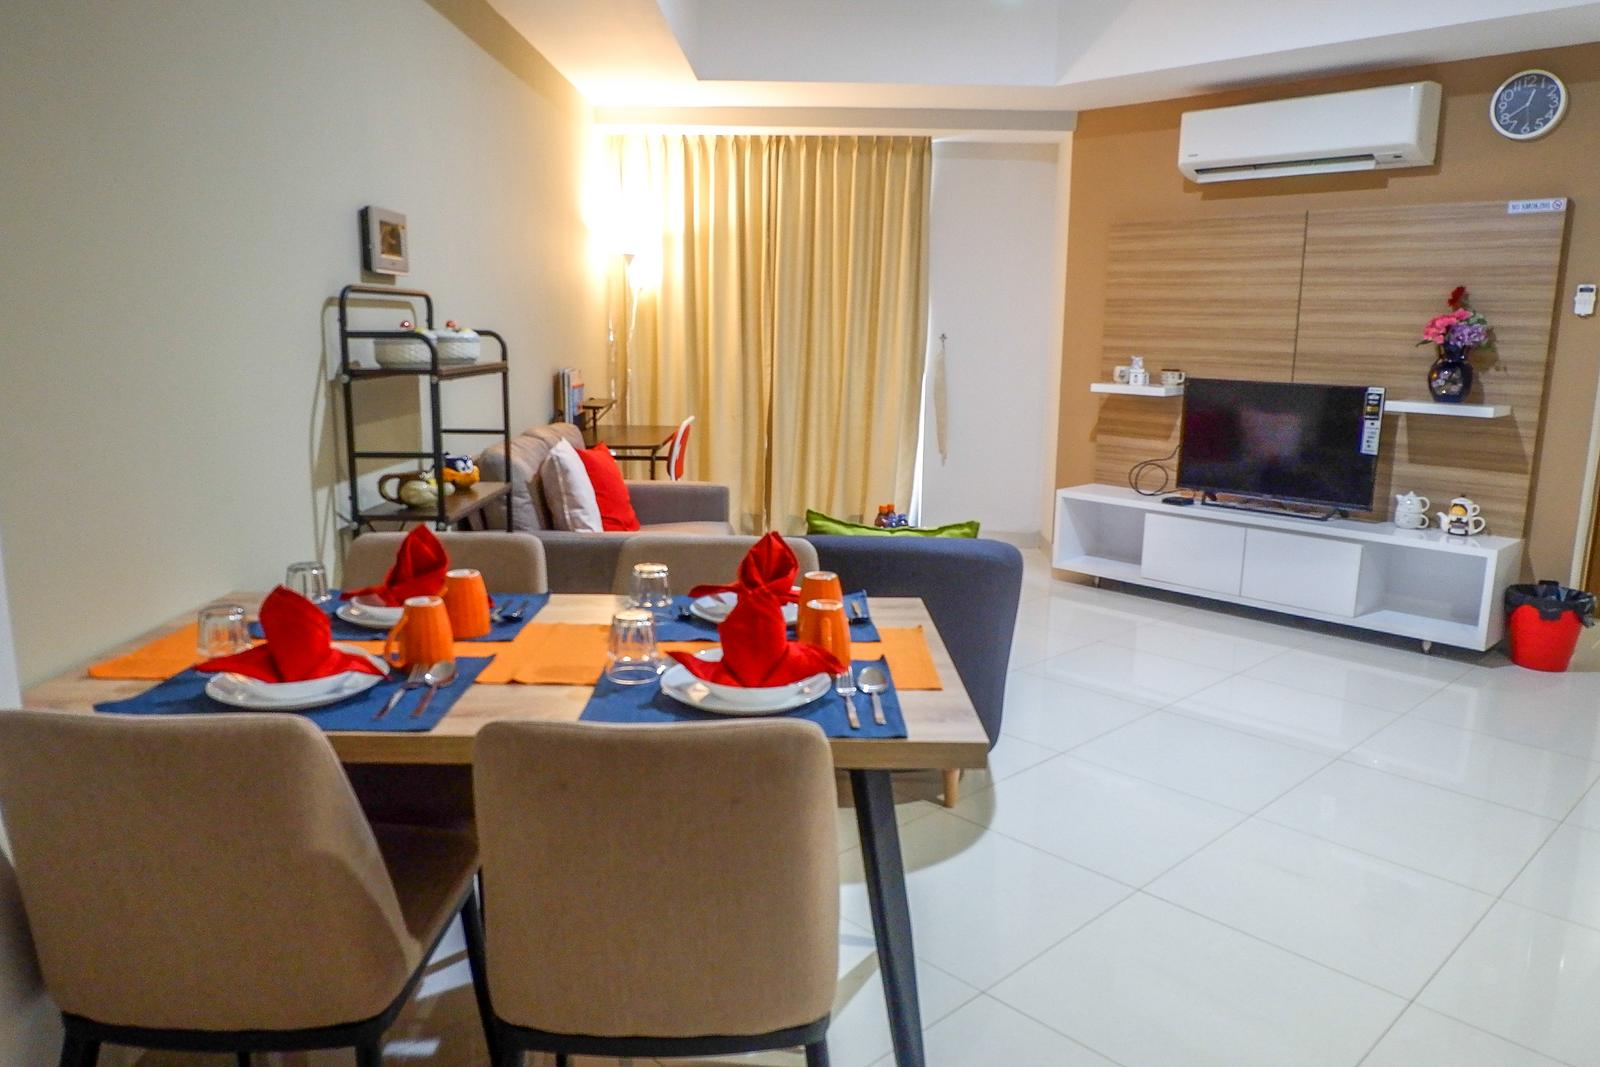 The Mansion Kemayoran - Spacious 2BR The Mansion Apartment Kemayoran By Travelio